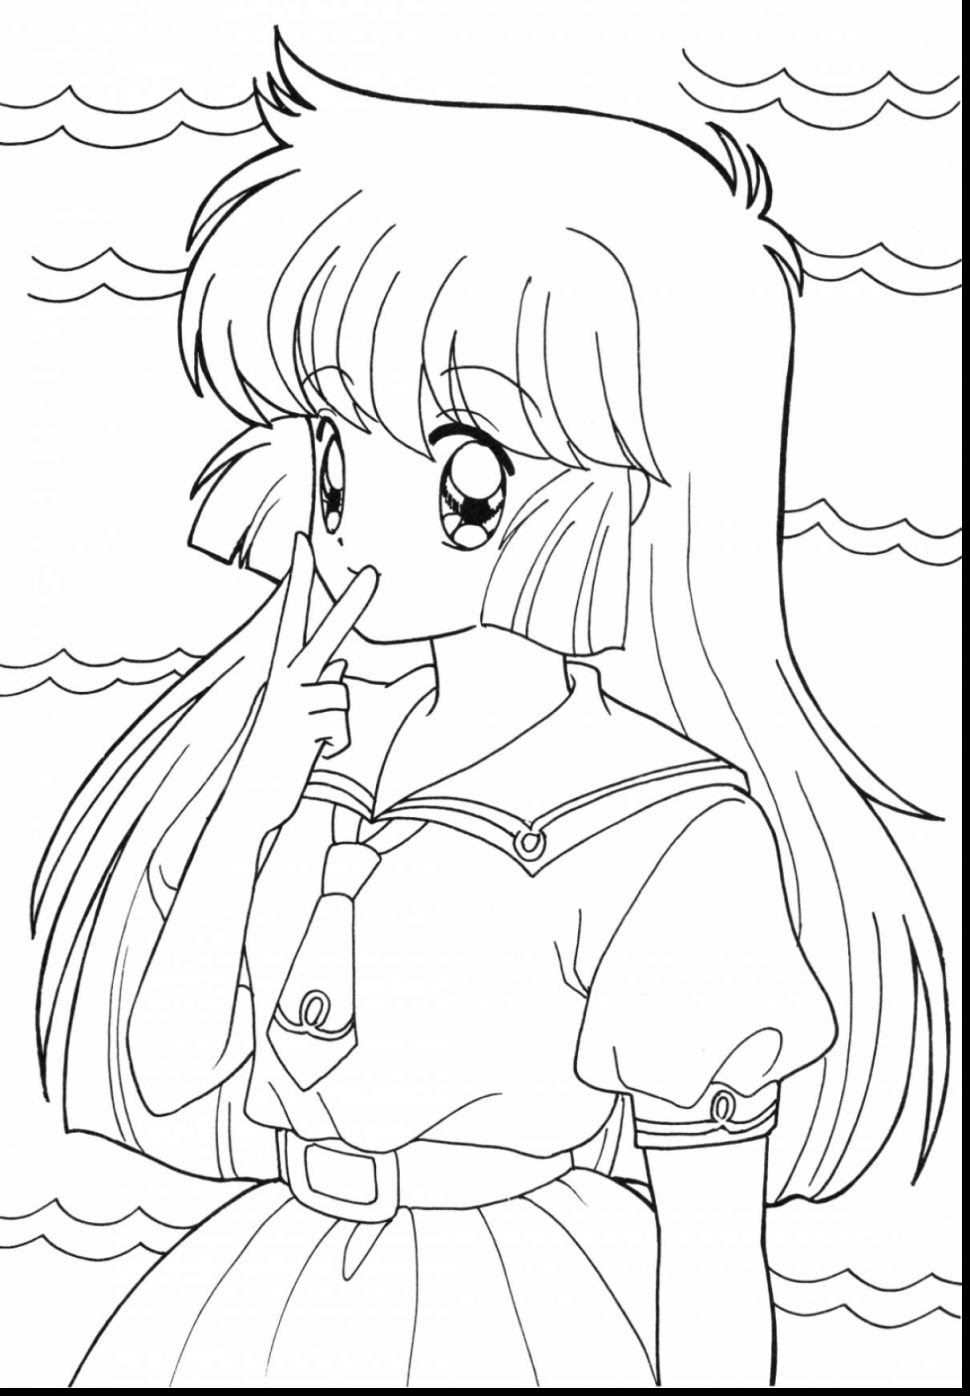 Wolf Girl Coloring Pages at GetColorings.com   Free ...